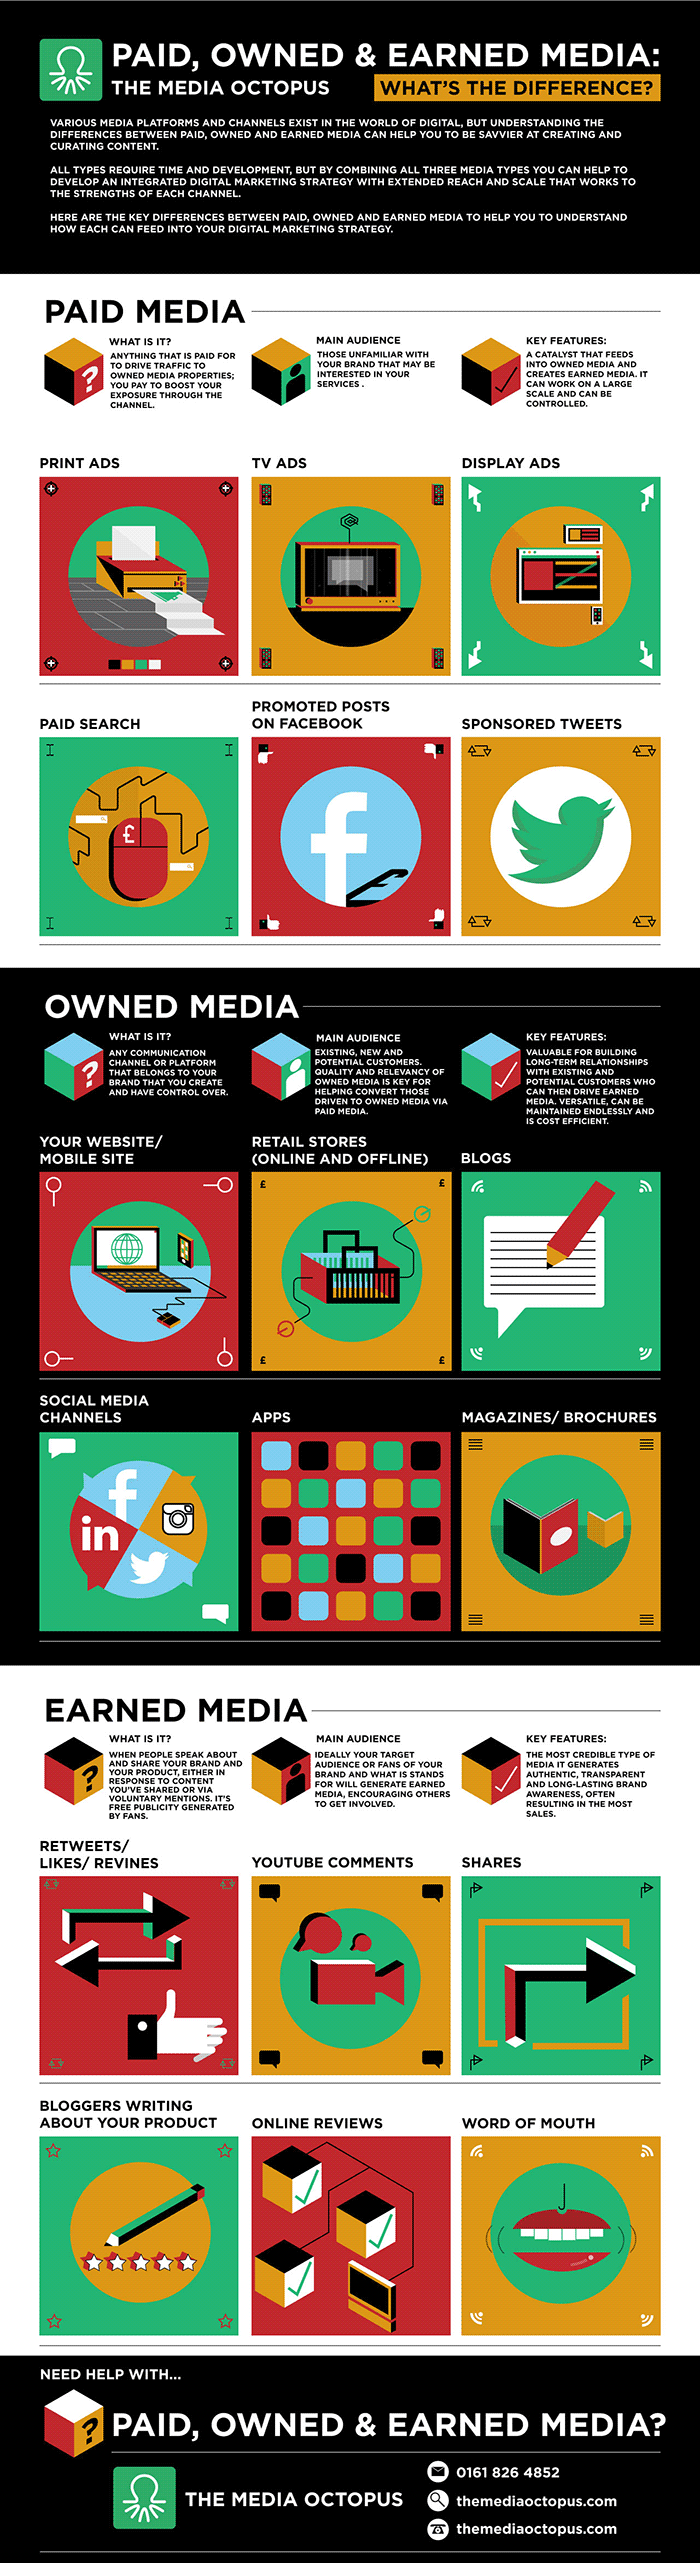 paid-owned-earn-media